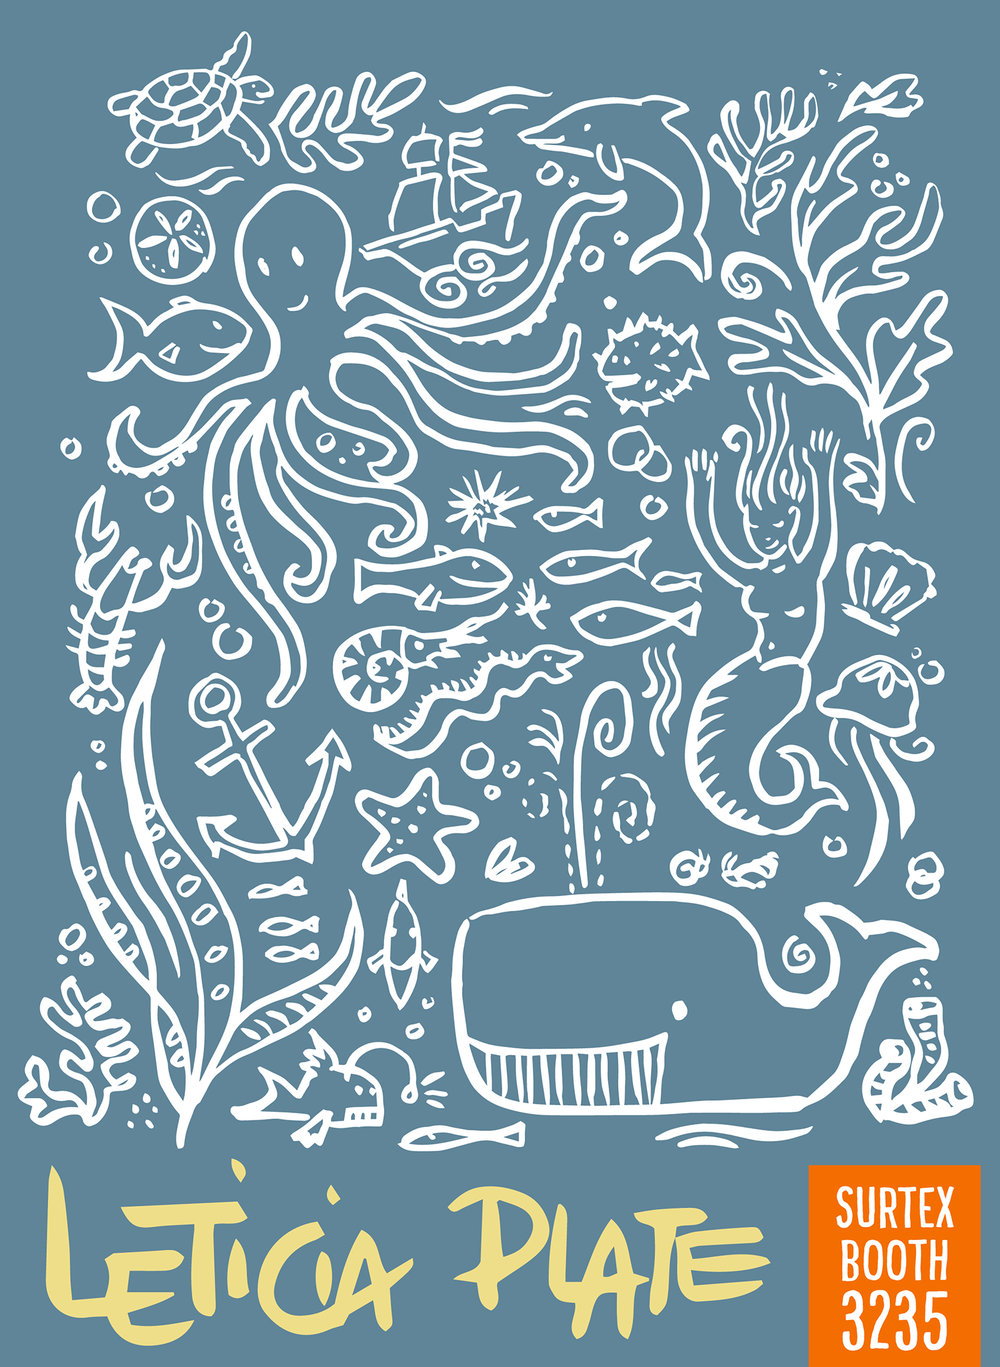 Leticia Plate sealife_surtex-01.jpg